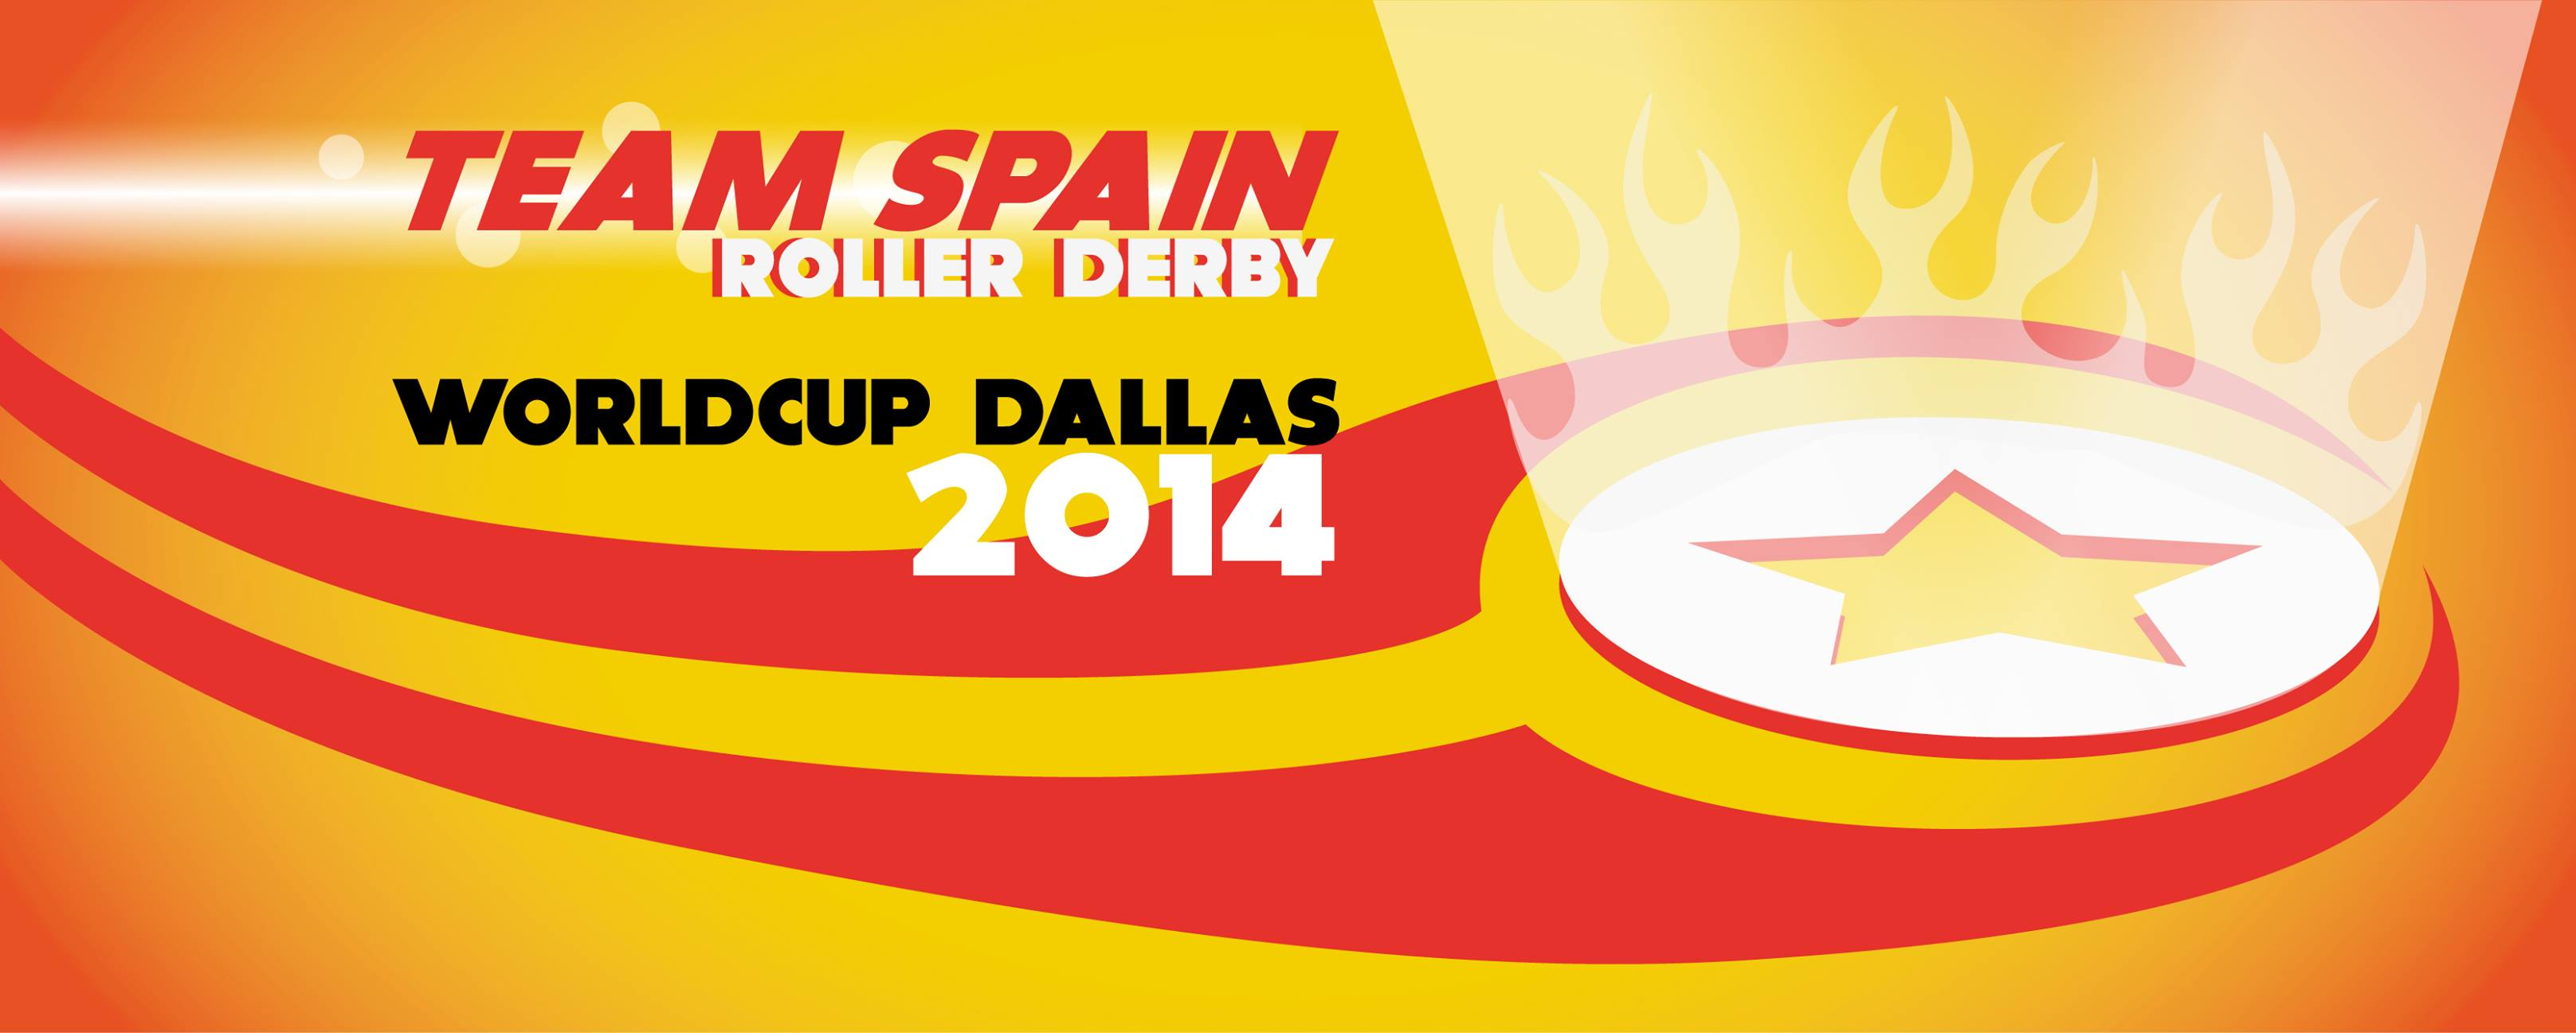 LOGO DE LA ROLLER DERBY WORLDCUP DALLAS 2014